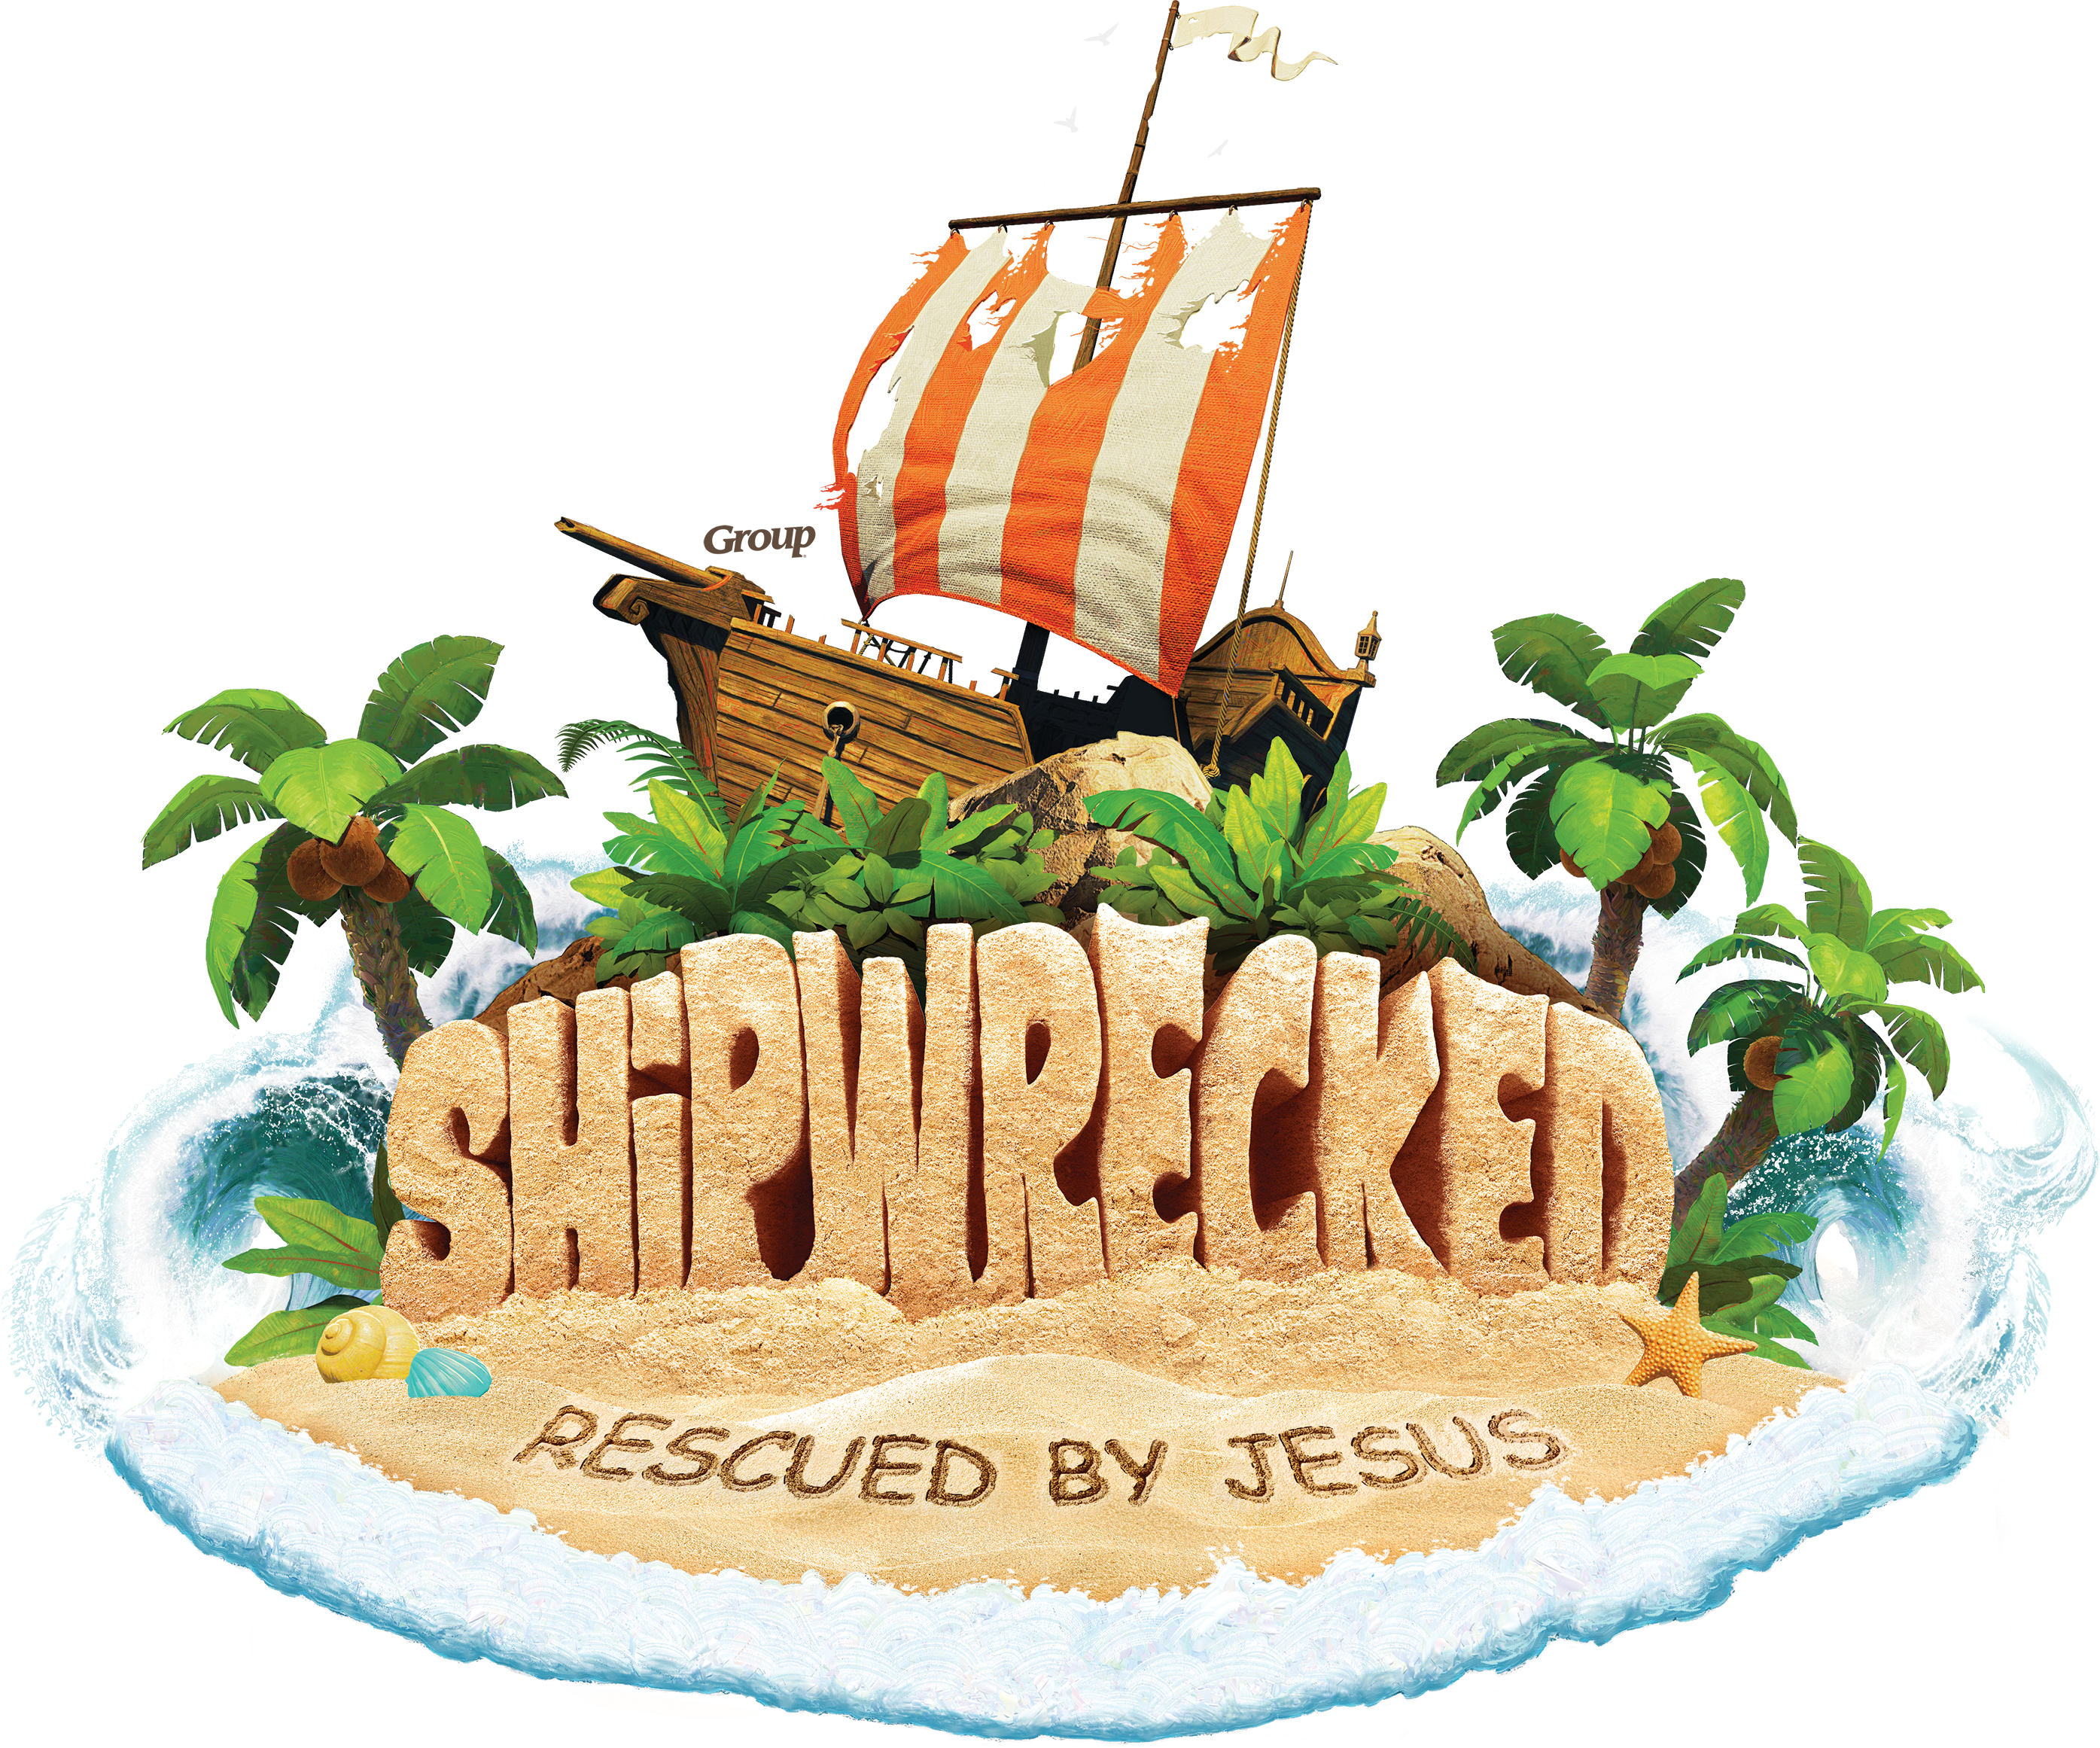 Shipwrecked VBS | Free Resources & Downloads png freeuse library